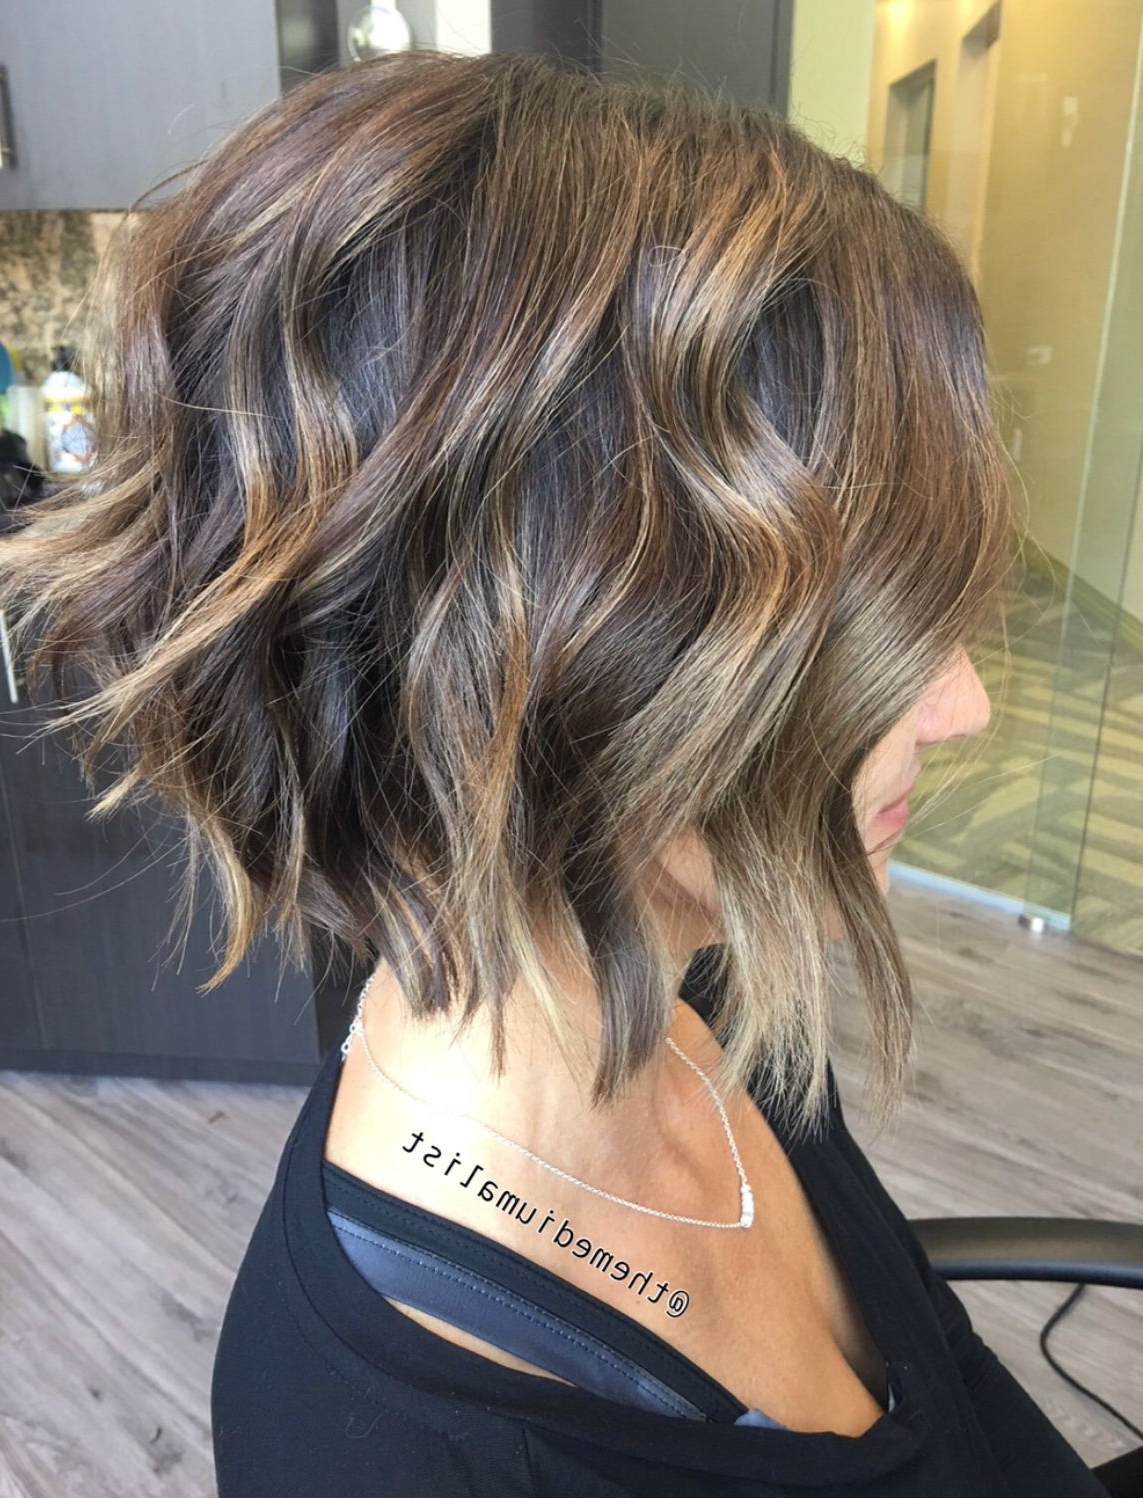 Preferred Soft Feathery Texture Hairstyles For Long Hair In Soft Balayage With A Textured Bob! (View 16 of 20)